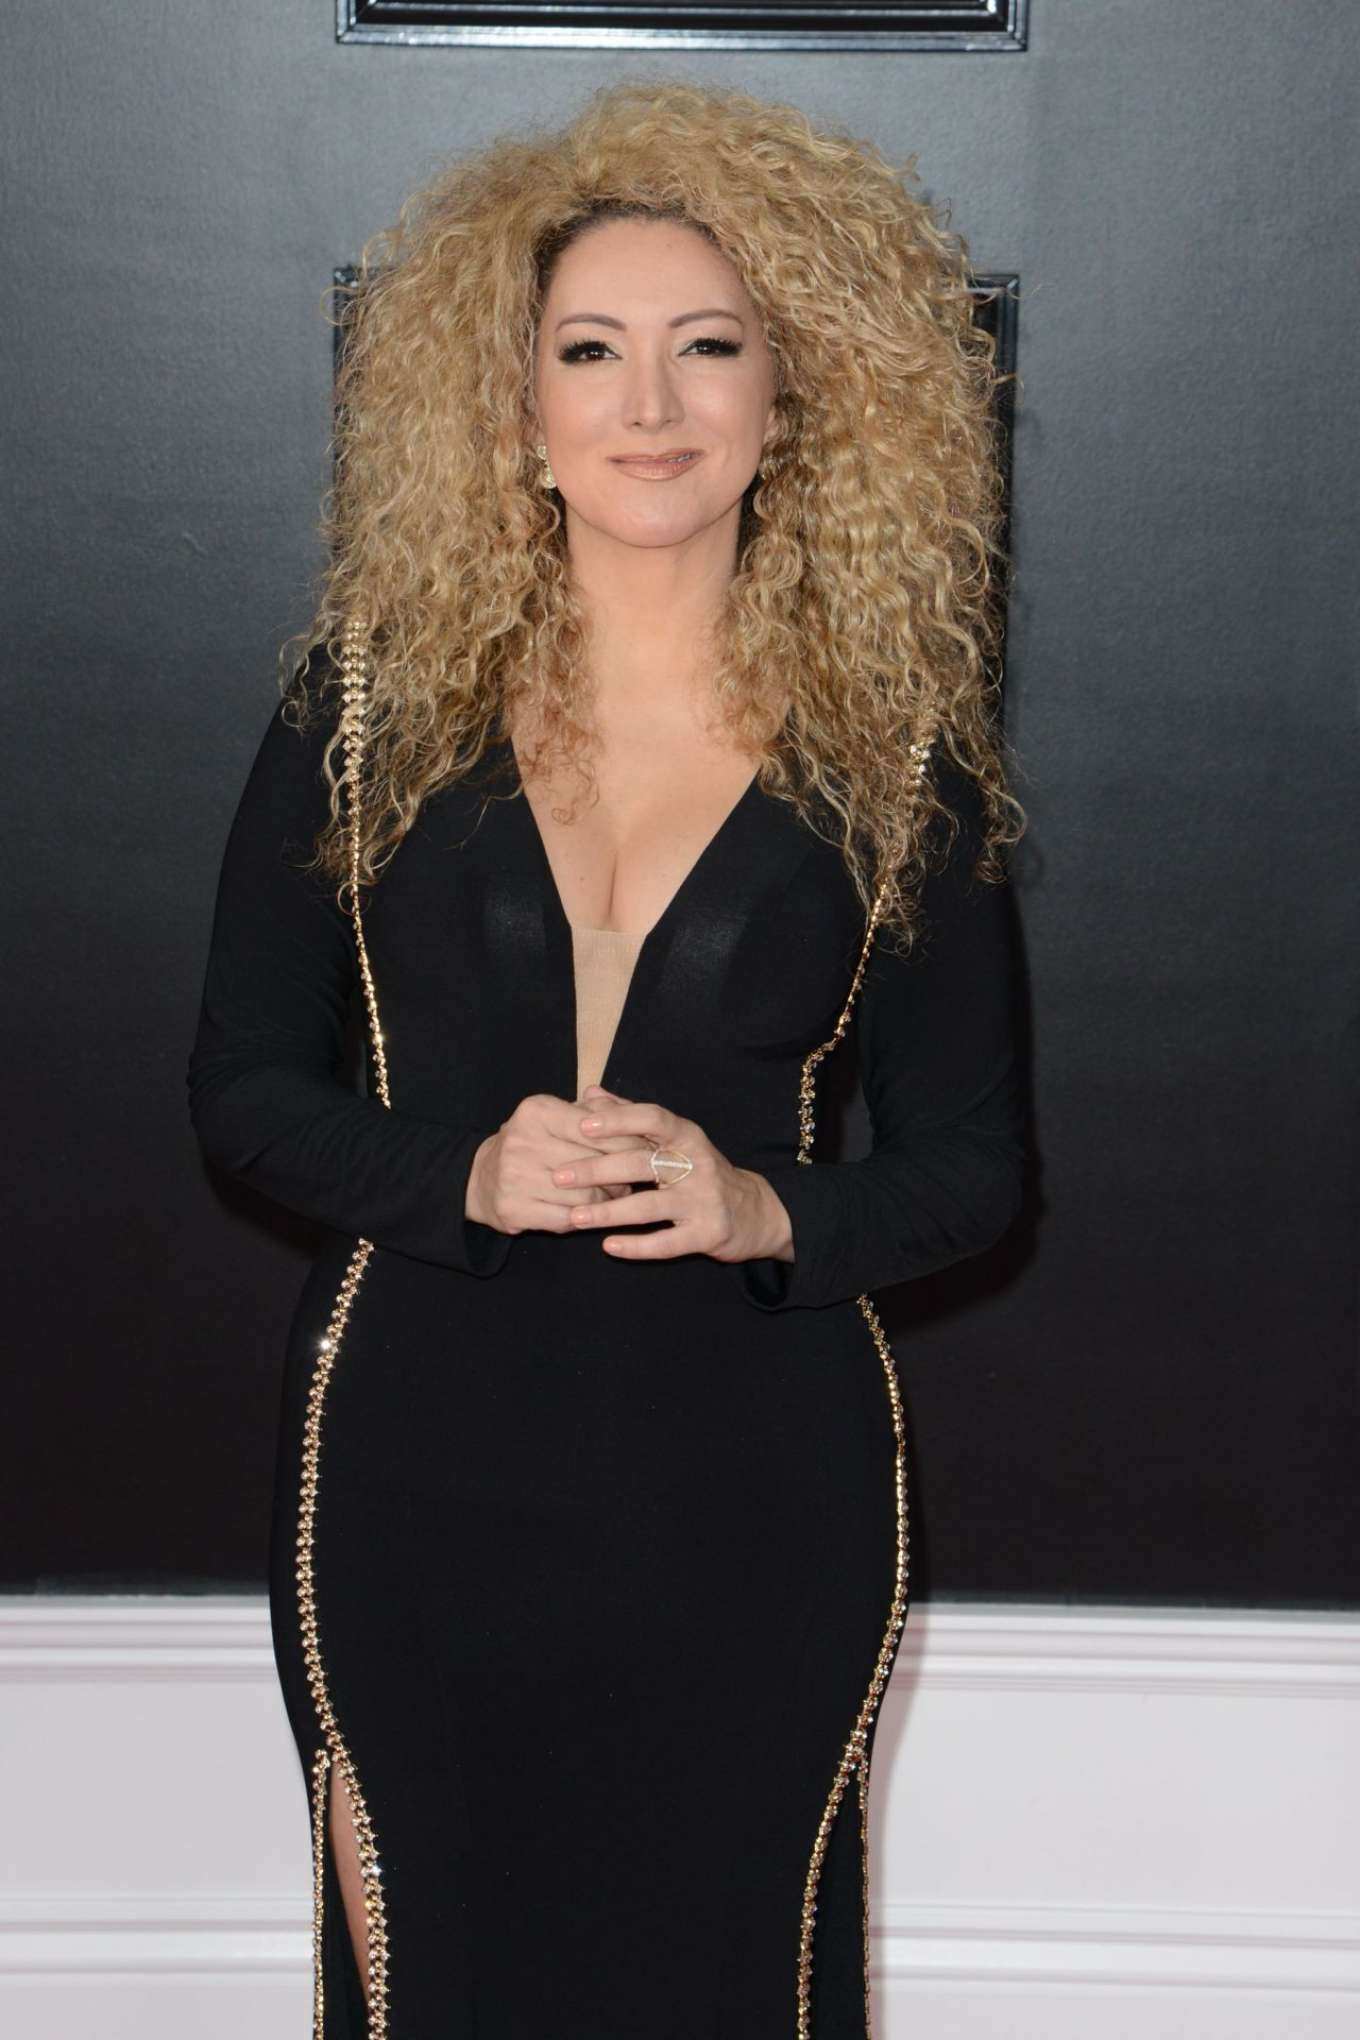 Photos Erika Ender nudes (39 foto and video), Tits, Paparazzi, Boobs, in bikini 2019